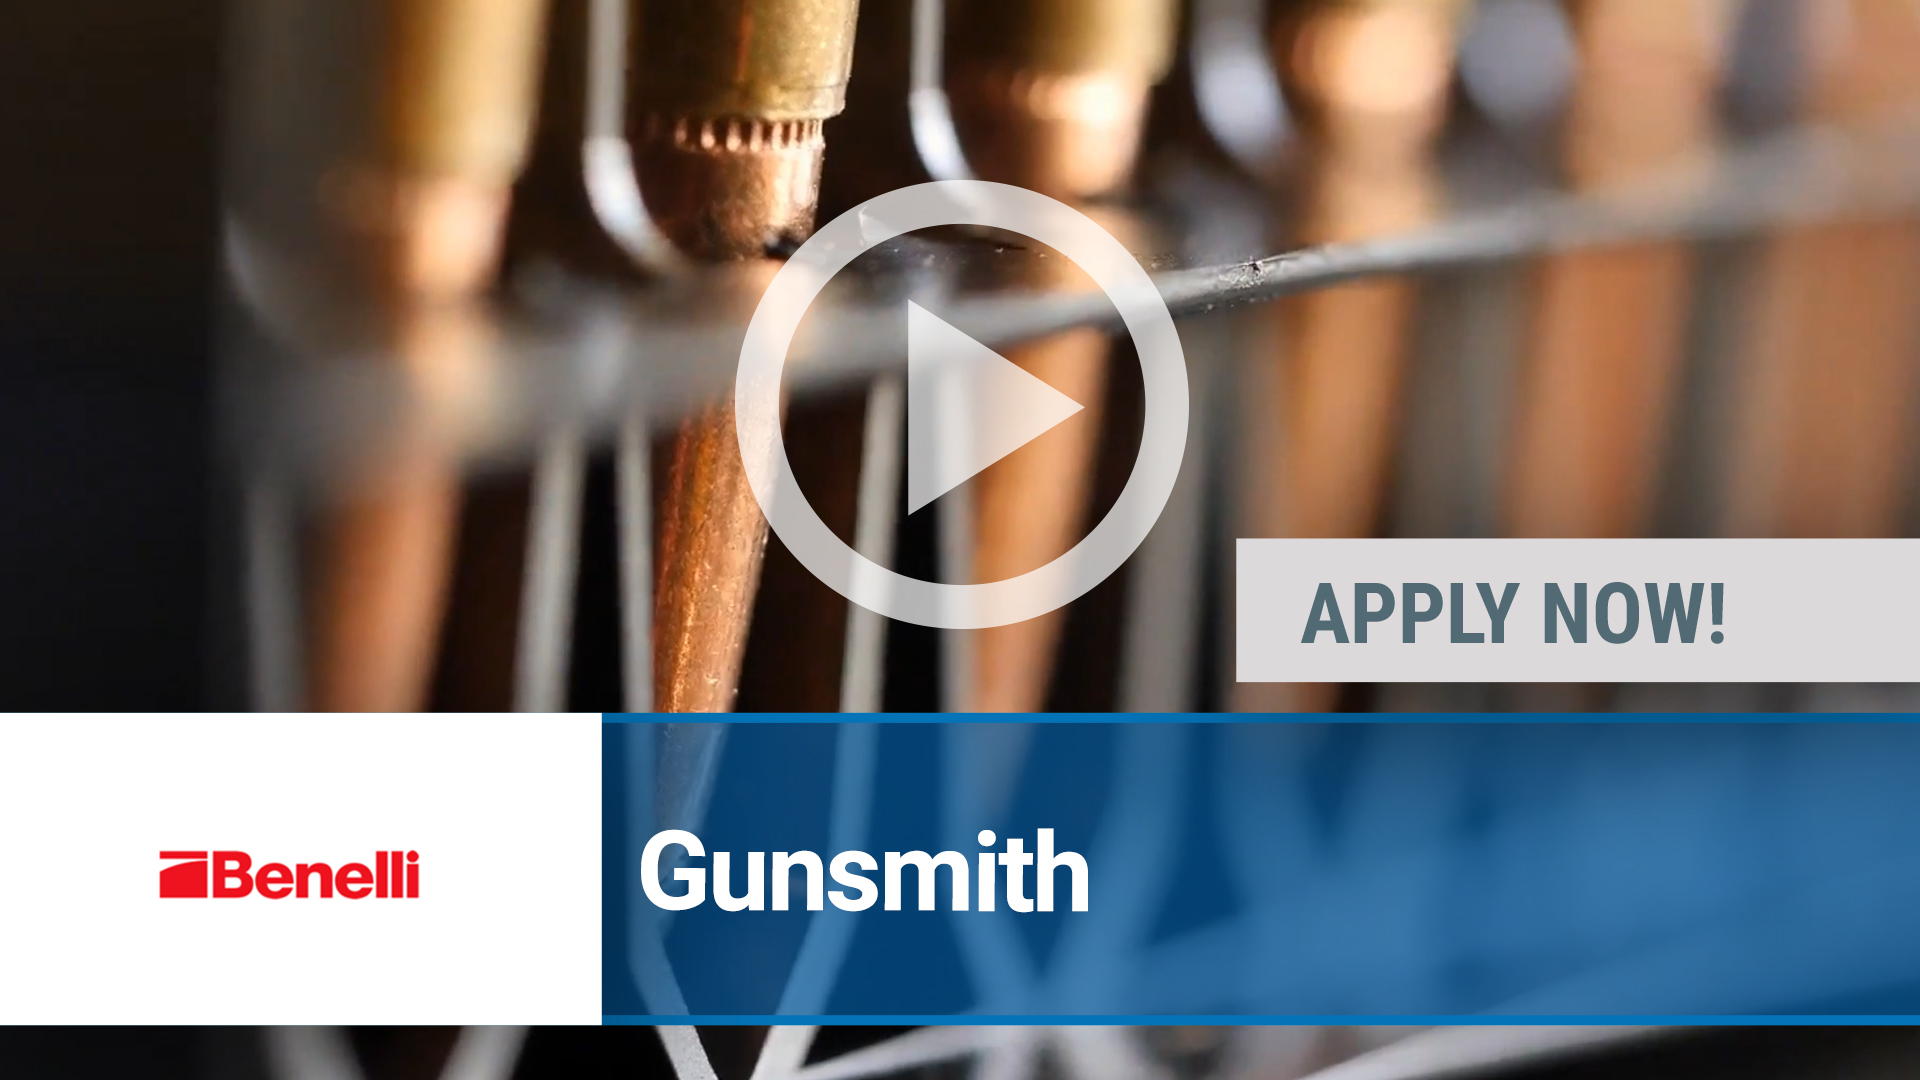 Watch our careers video for available job opening Gunsmith in Pocomoke, MD, USA